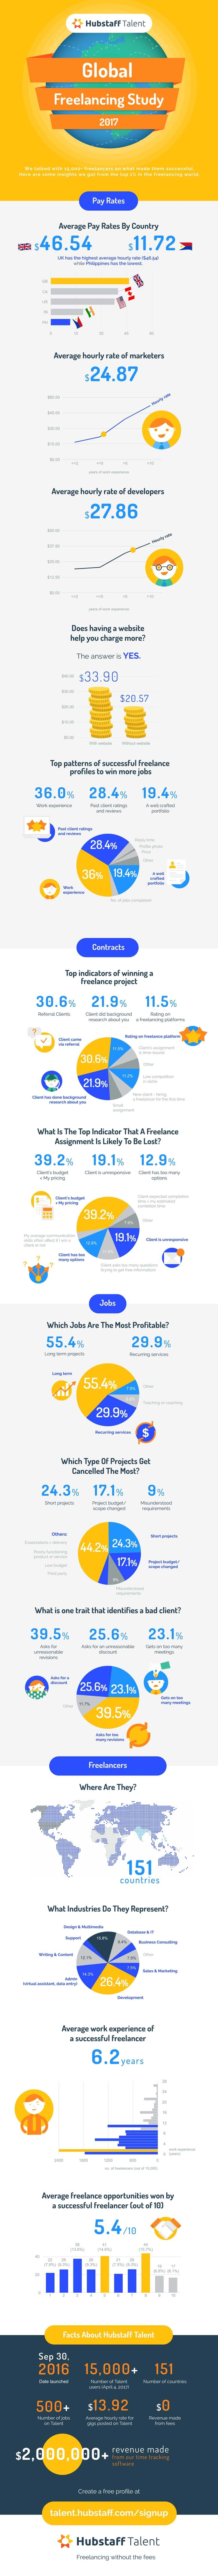 rsz_hubstaffs-freelancing-trends-2017-tentative-title-infographic